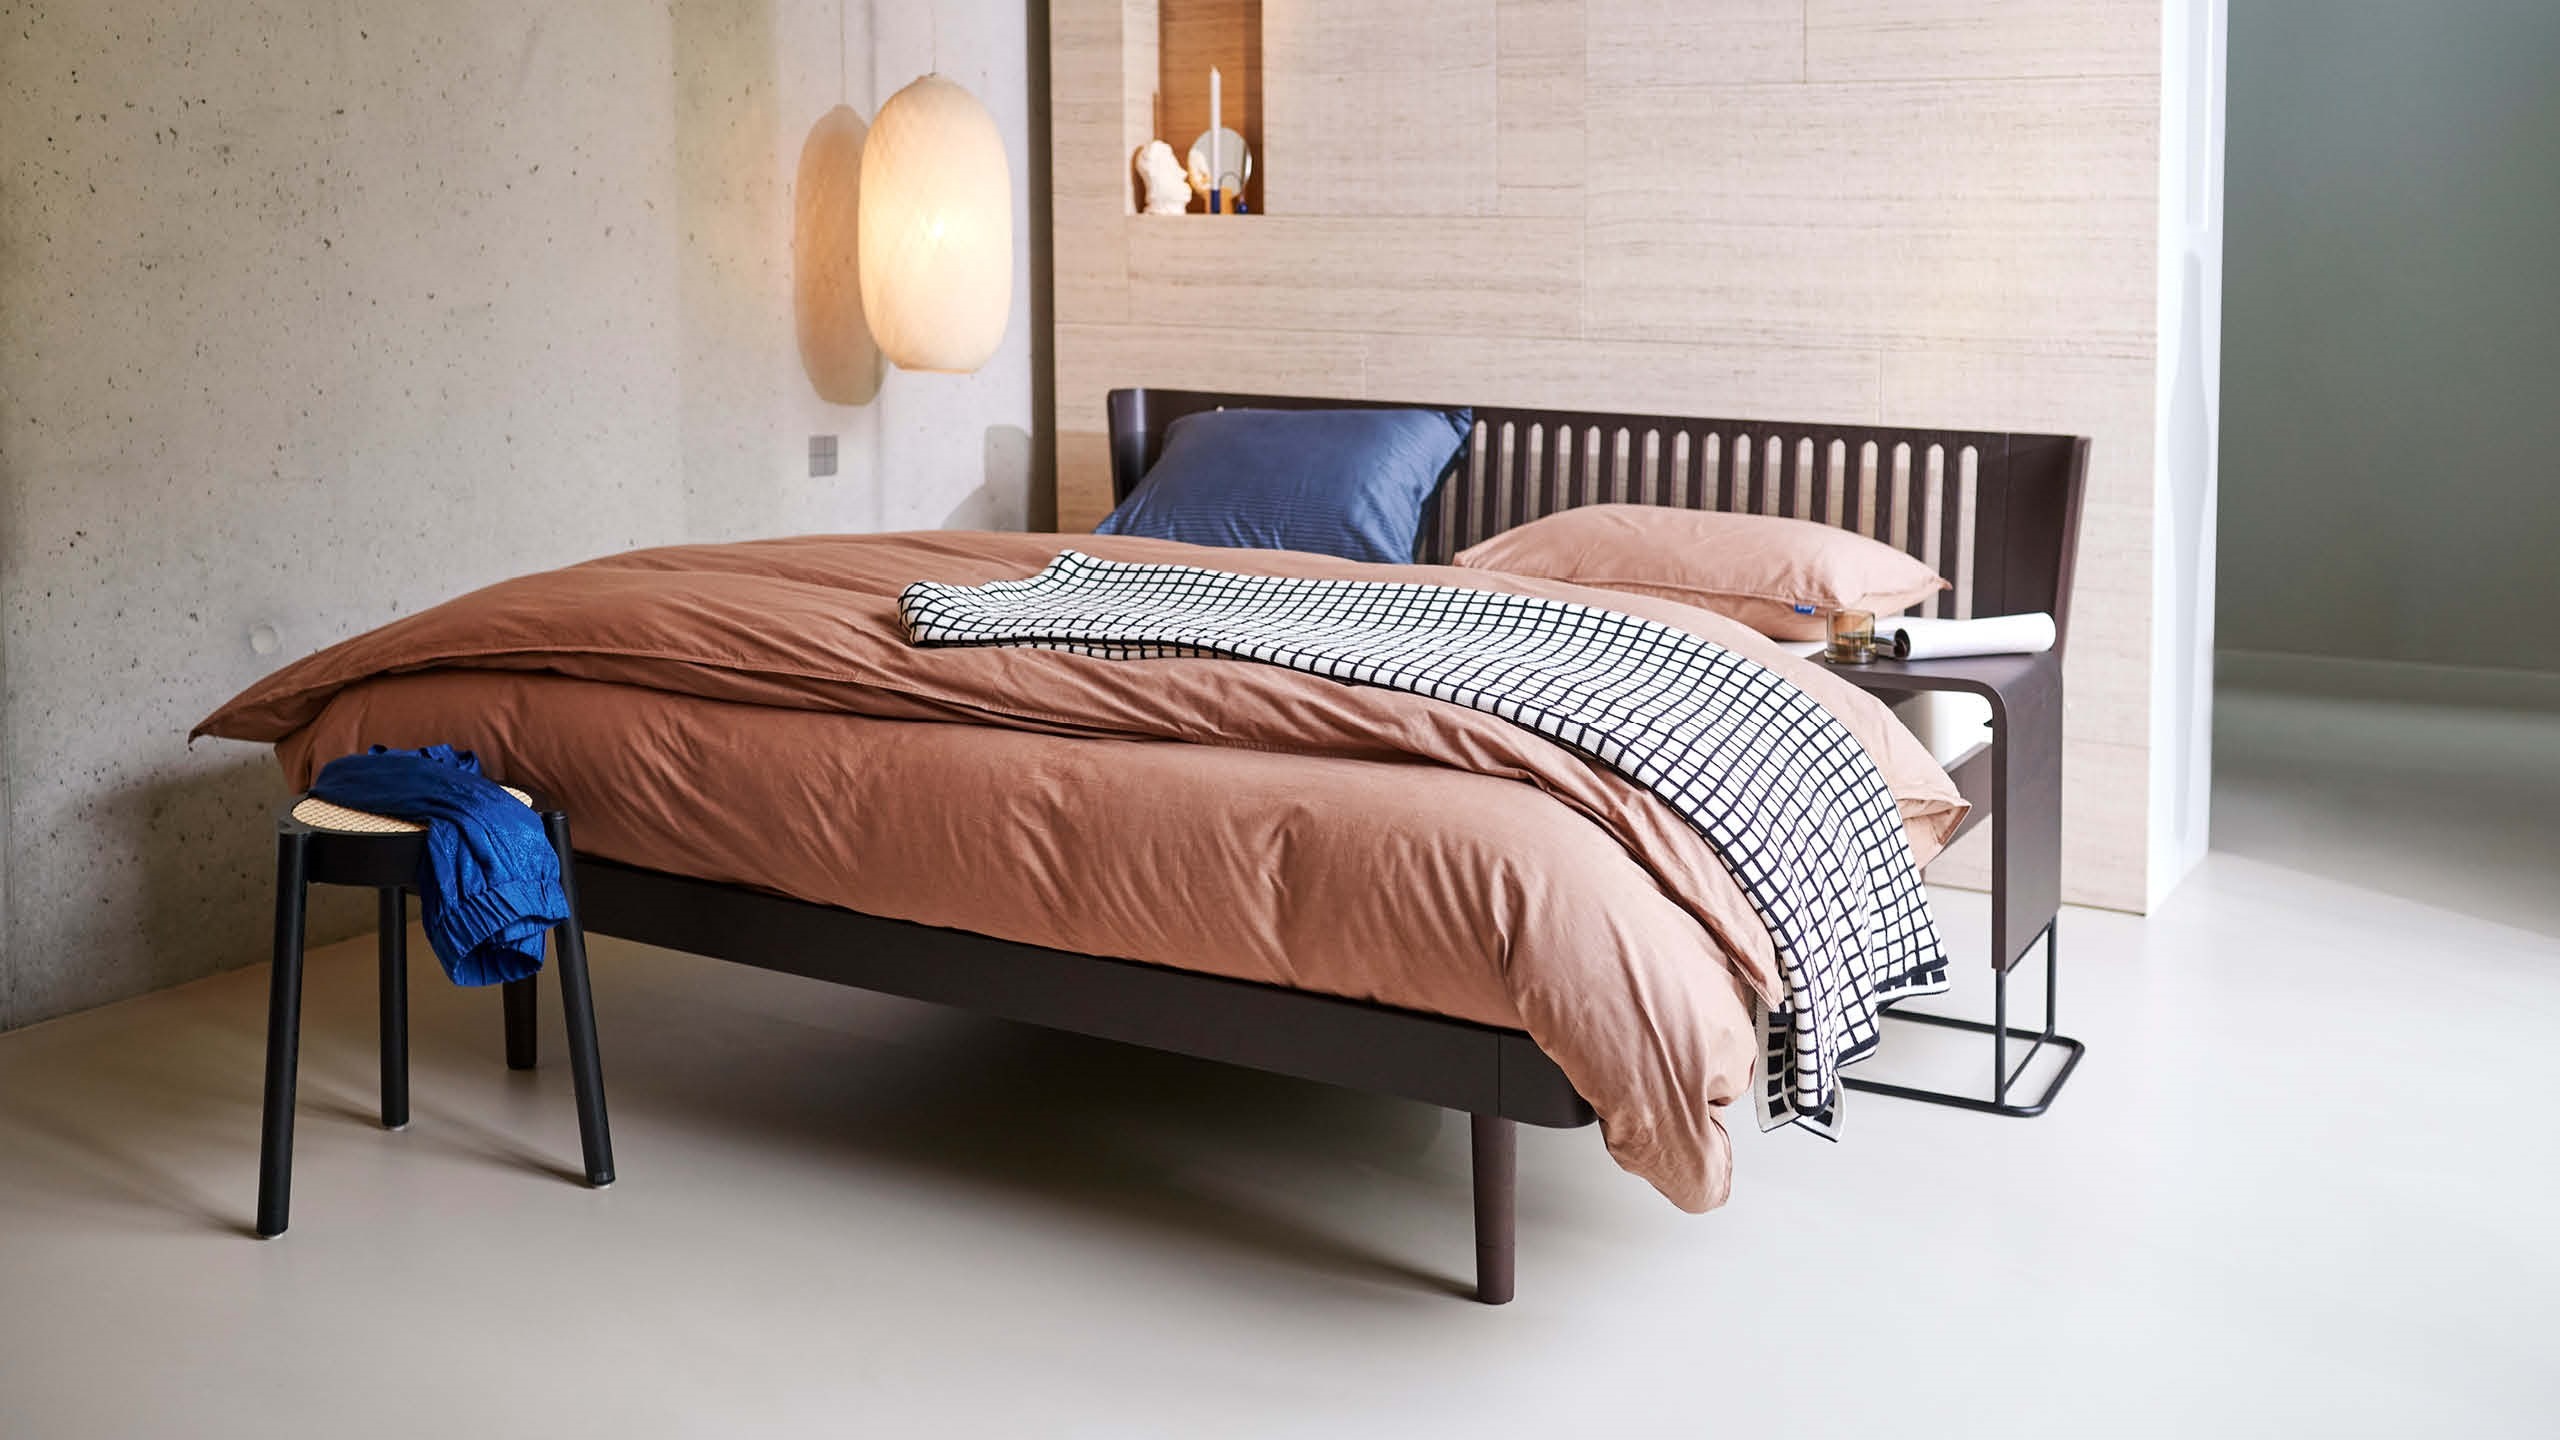 Choclate Noa bed van Auping